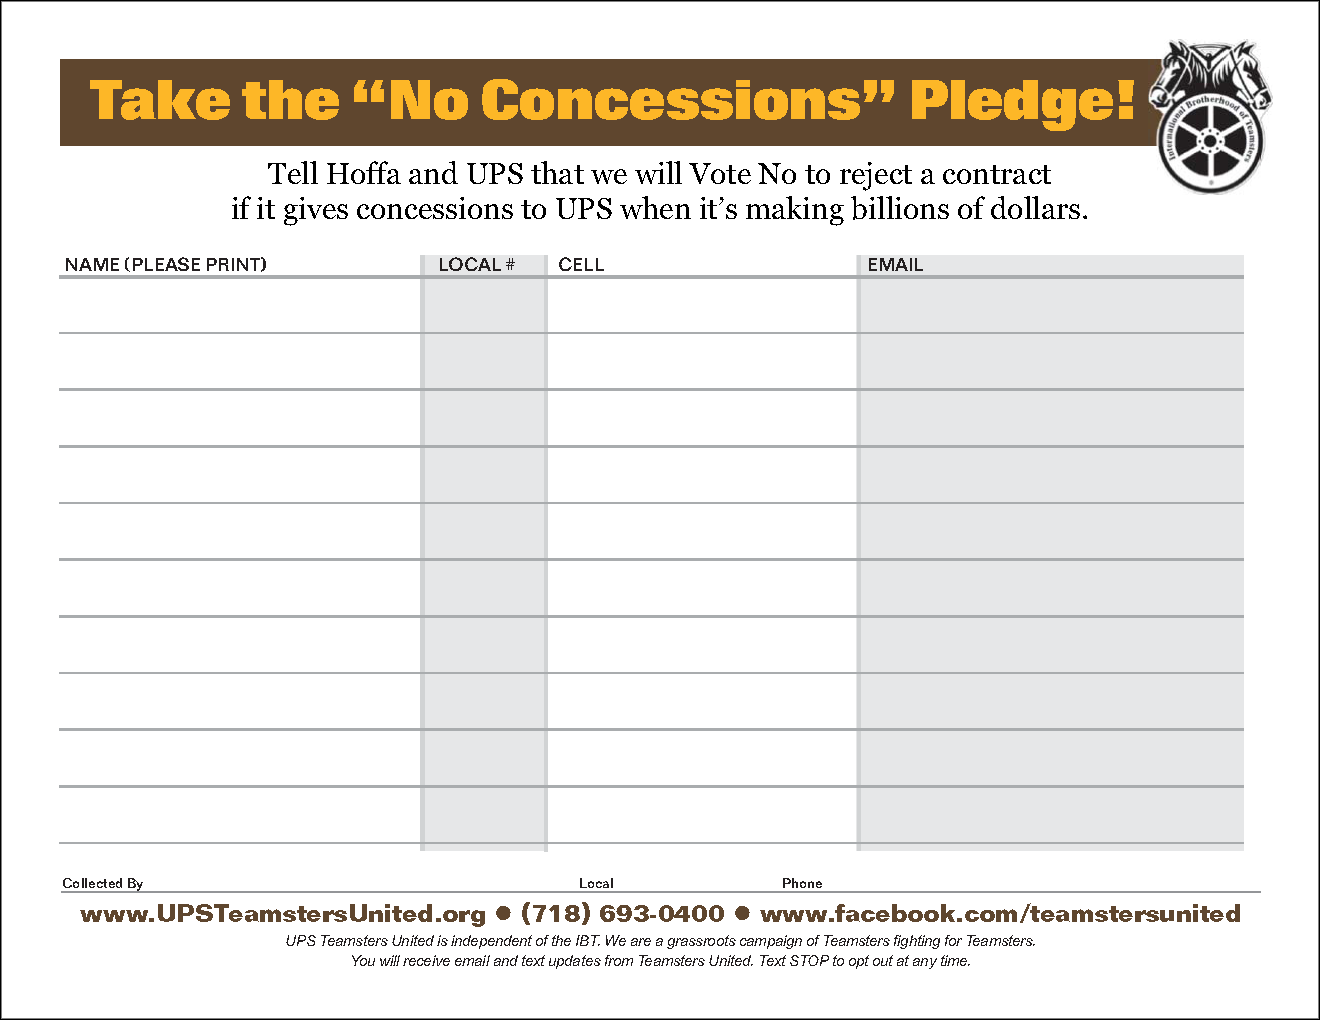 No-Concessions-Pledge-image.png